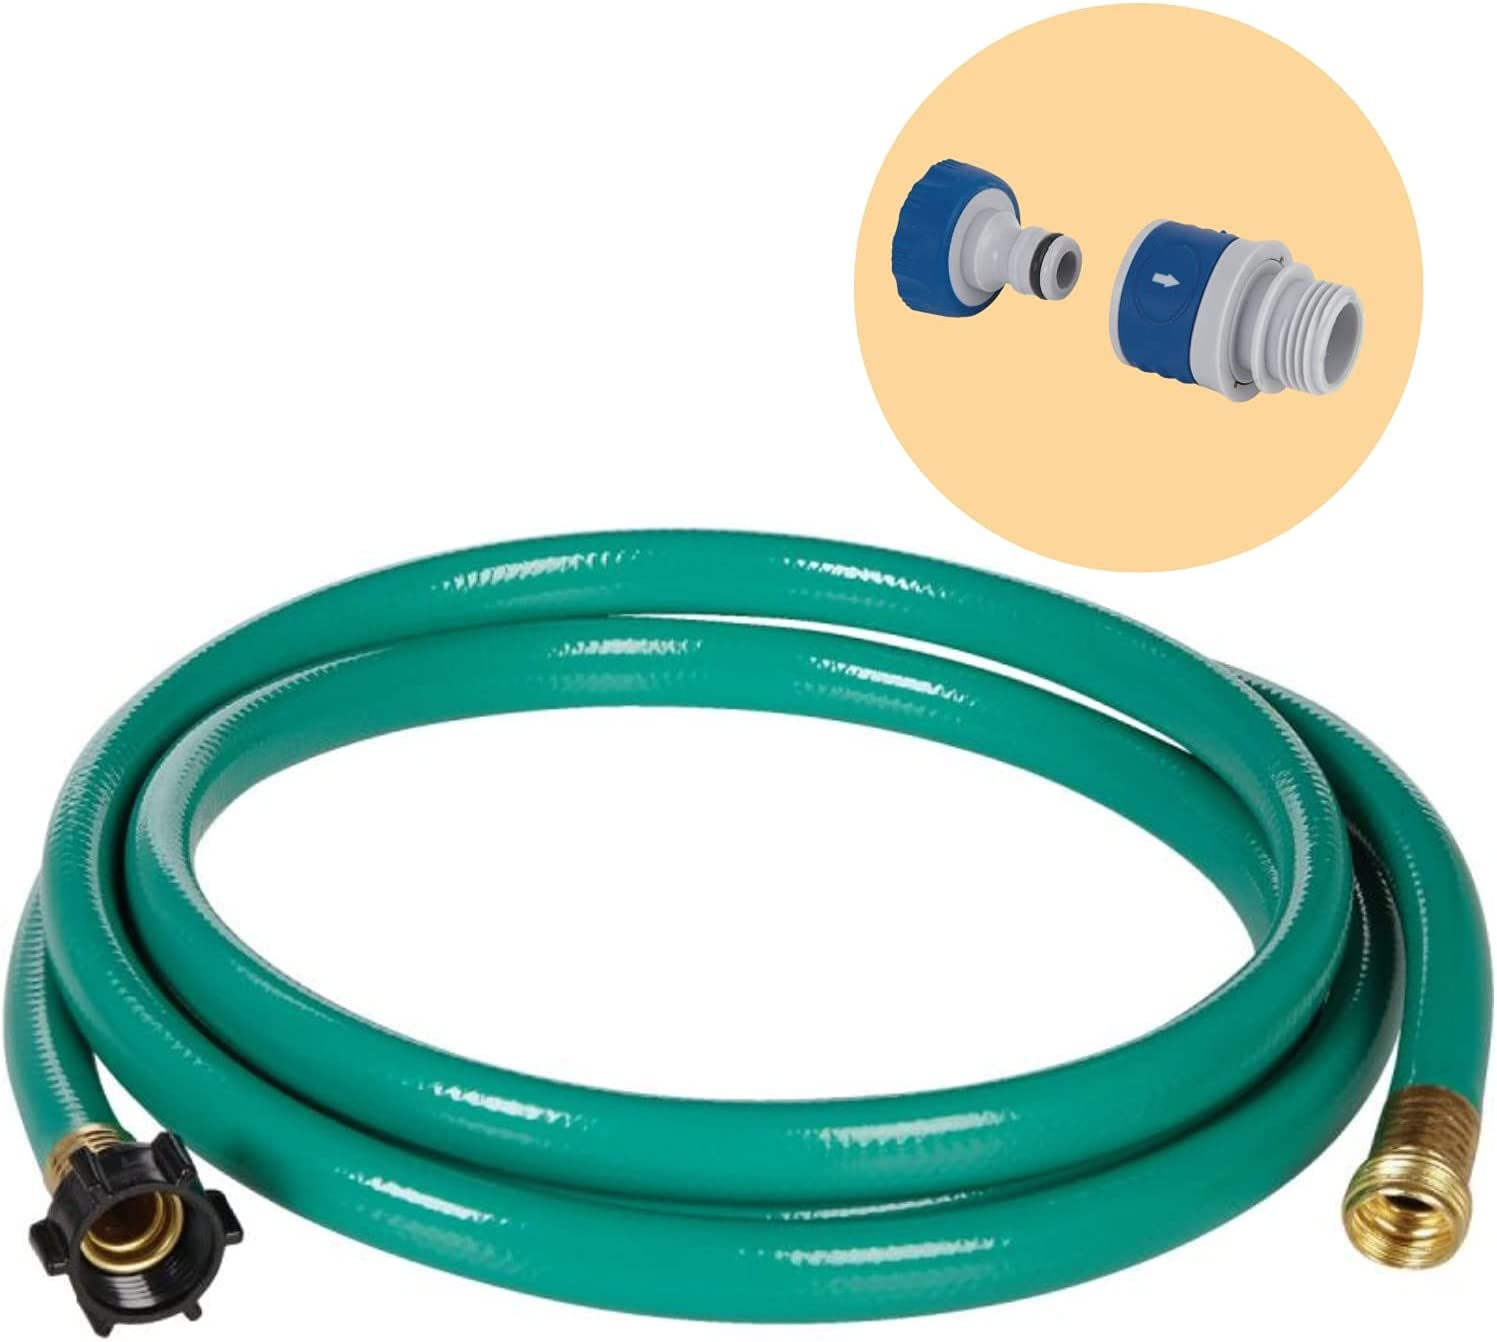 Do it Best Hose Reel Leader Garden Watering Hose- Male & Female Brass Coupler Connections- 6ft x 5/8in.- W/ Rustproof Quick Connect Adapter for Easy Connect & Disconnect of Threaded Hose Nozzles